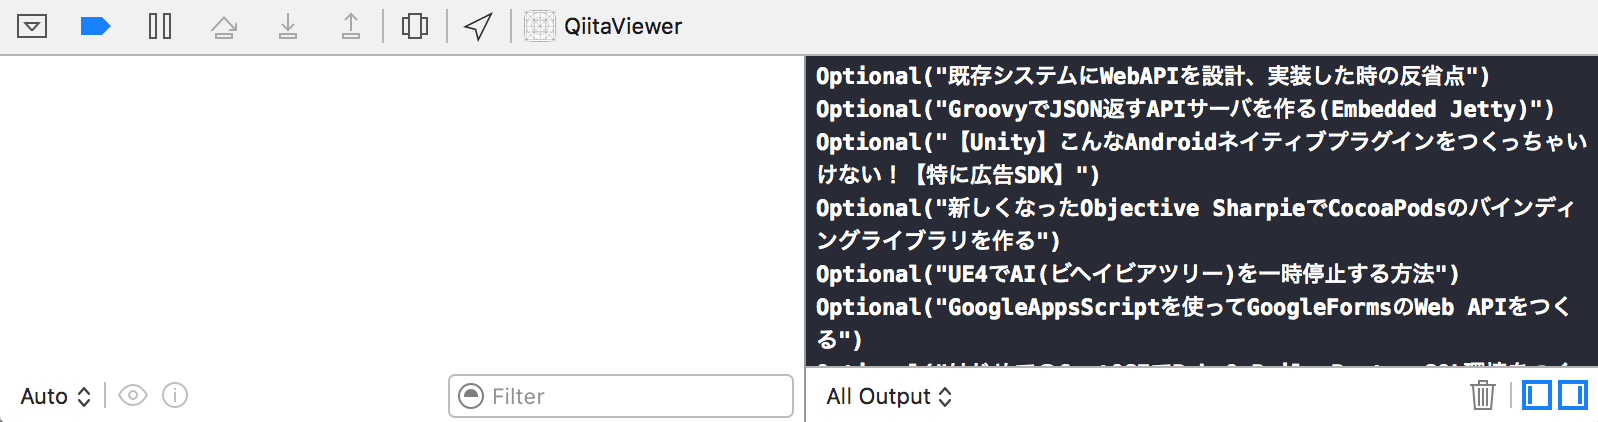 ArticleListViewController_swift.png